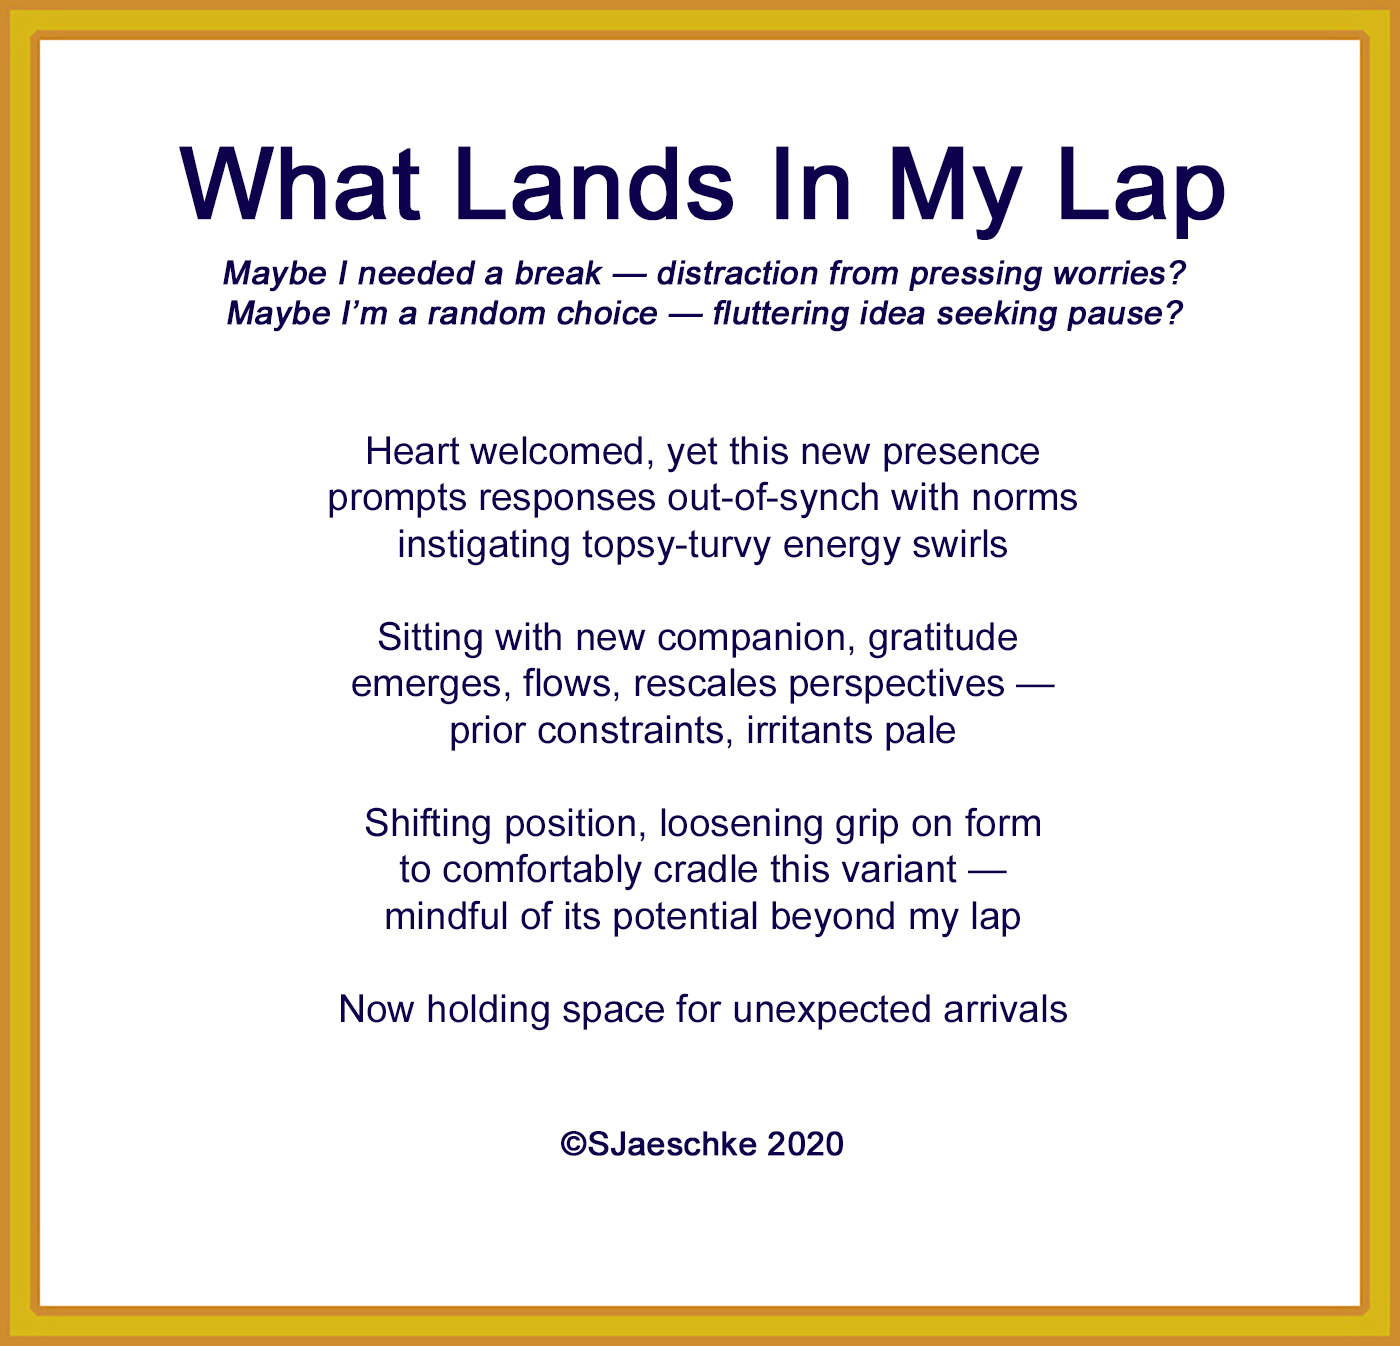 Post_2020-05-01_Poem_WhatLandsInMyLap